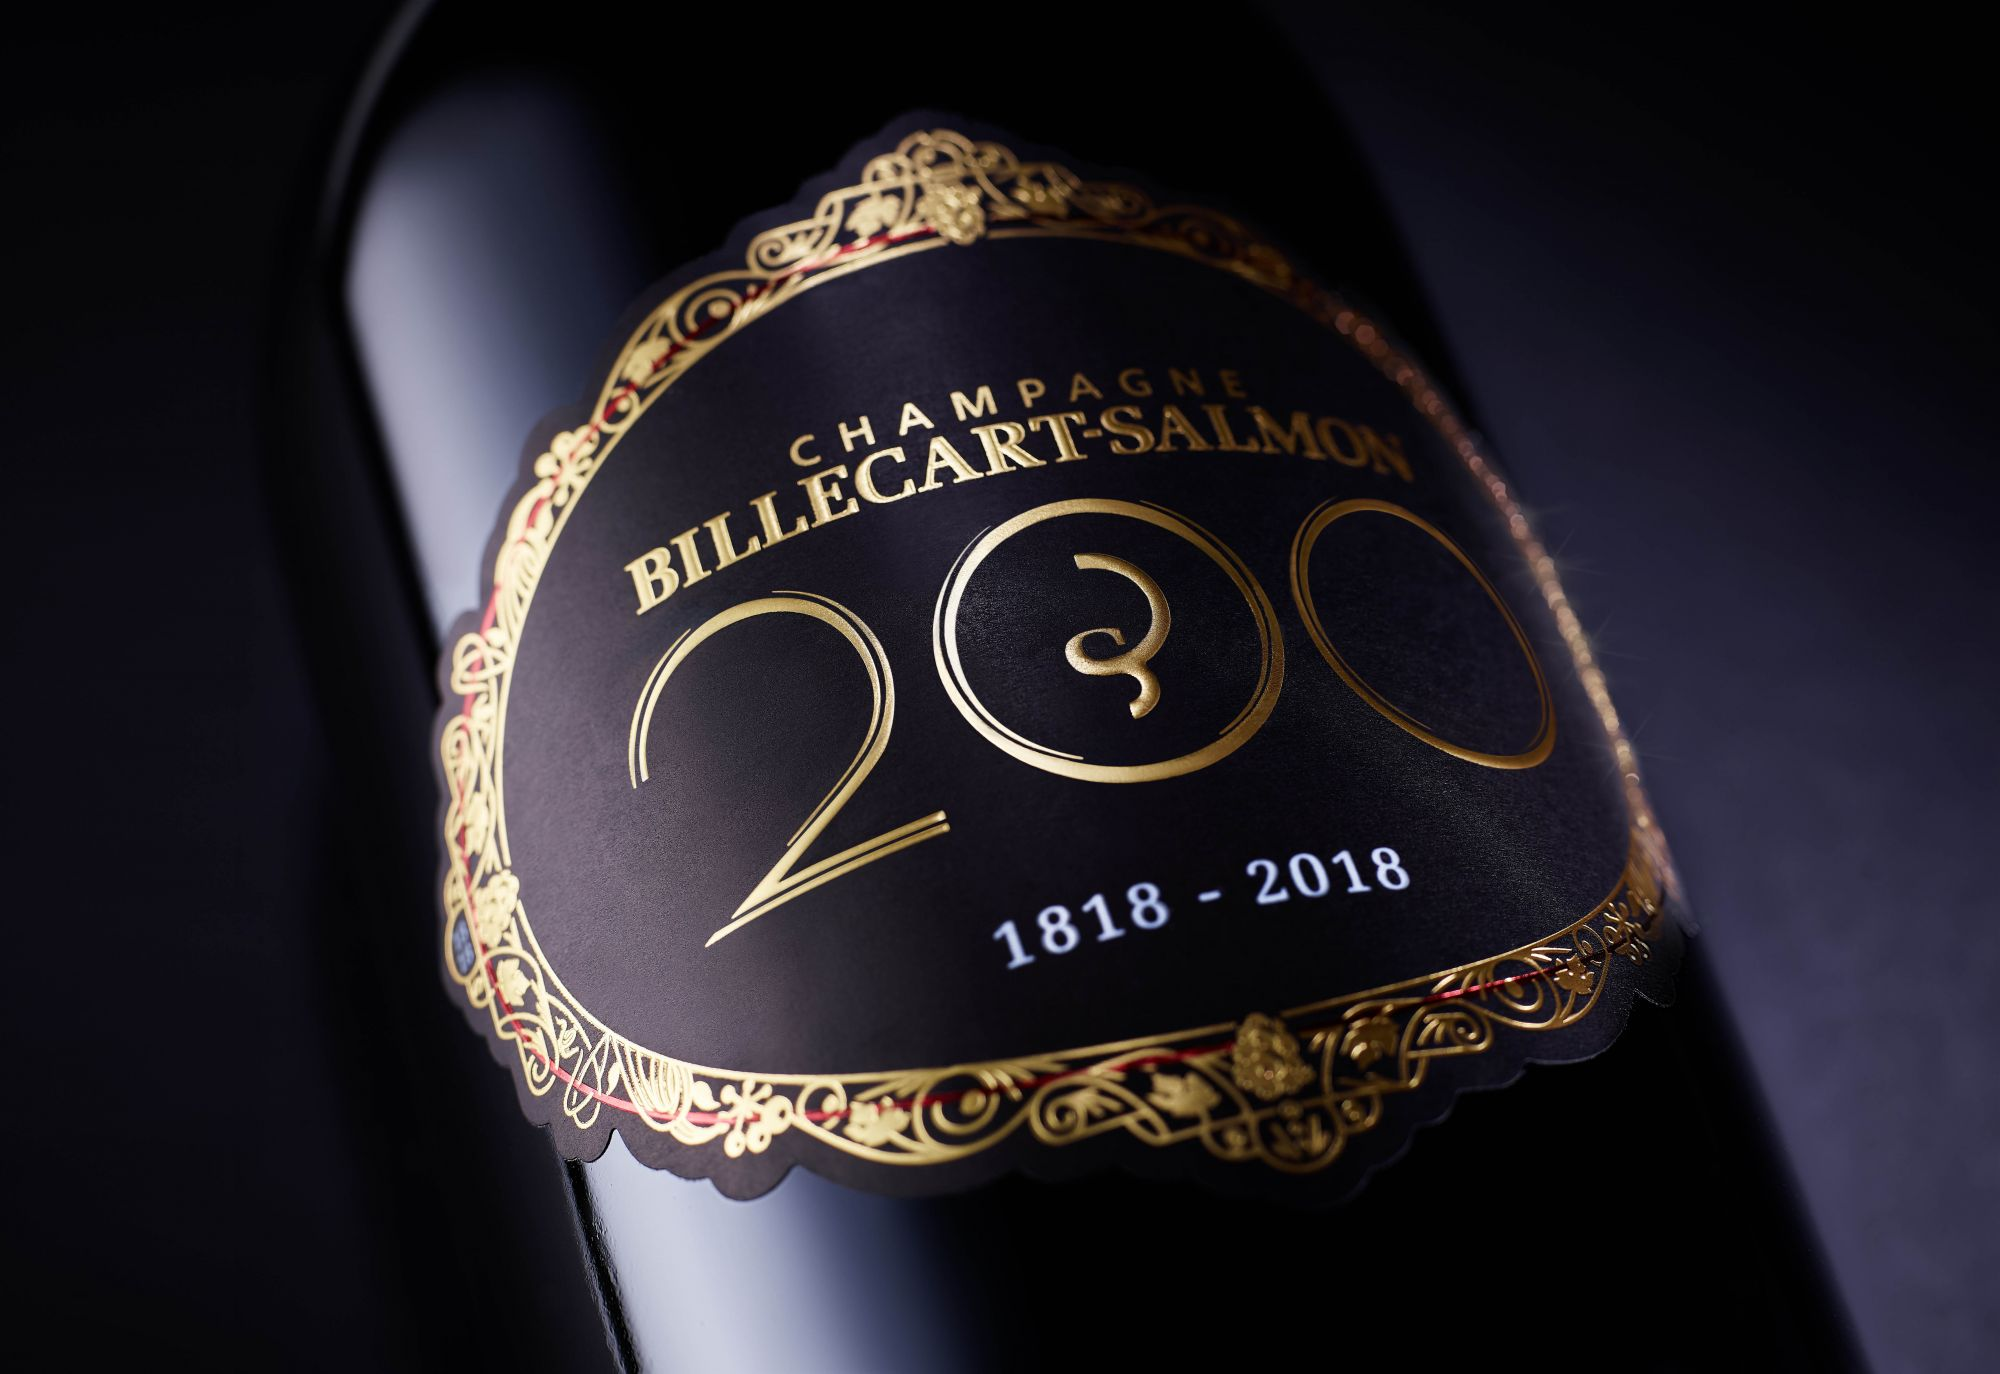 Champagne Billecart-Salmon Celebrates 200 Years Of Independence